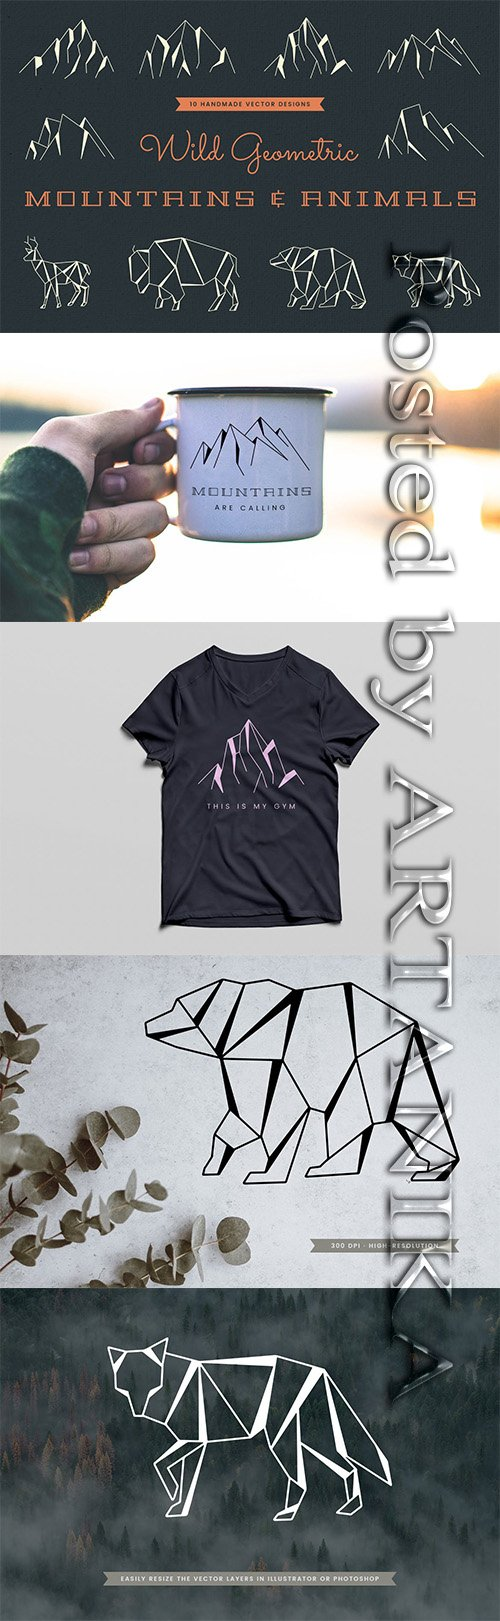 Wild Geometric Mountains & Animals